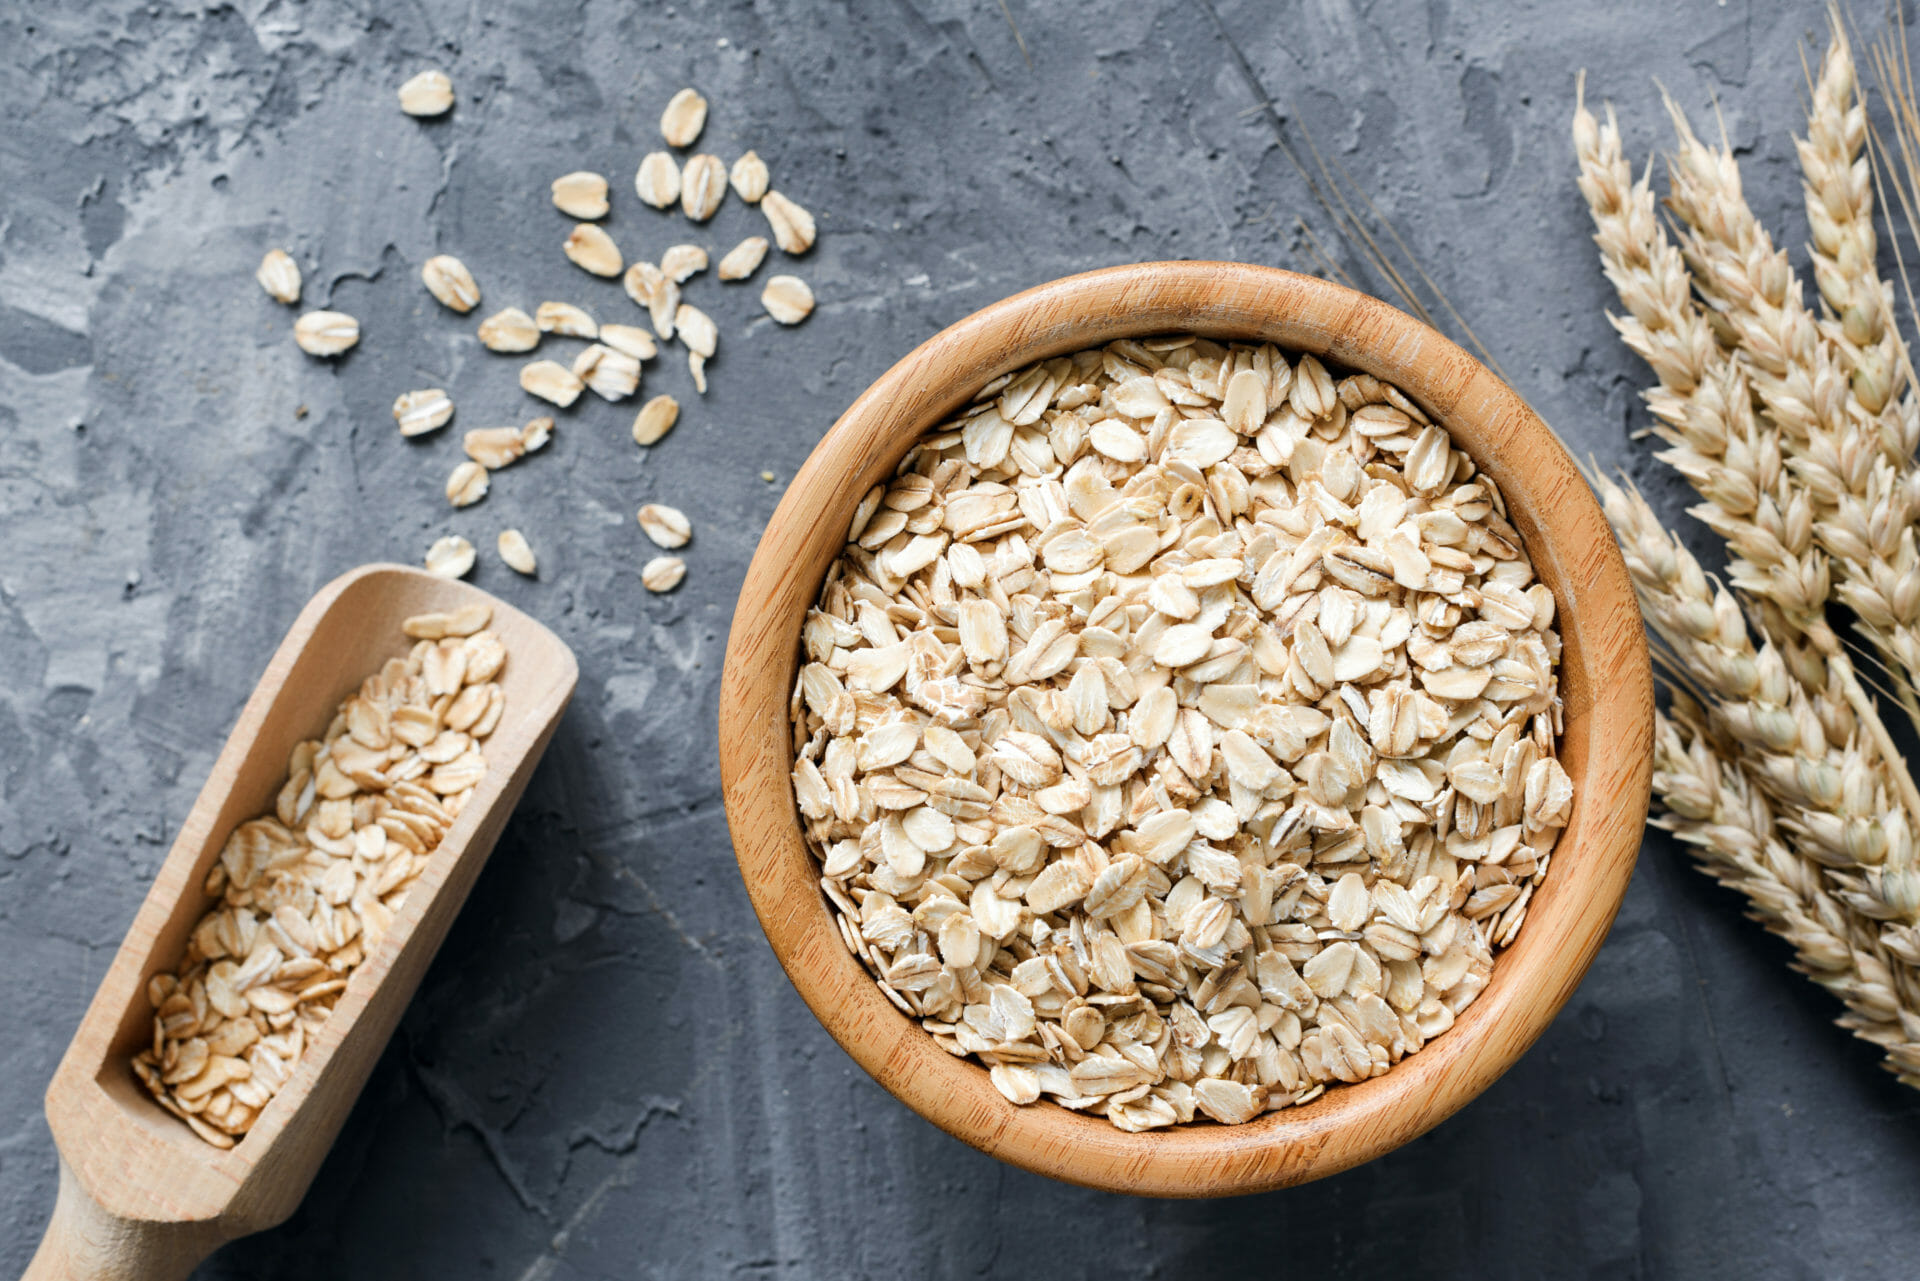 Rolled oats or oat flakes in wooden bowl and golden wheat ears